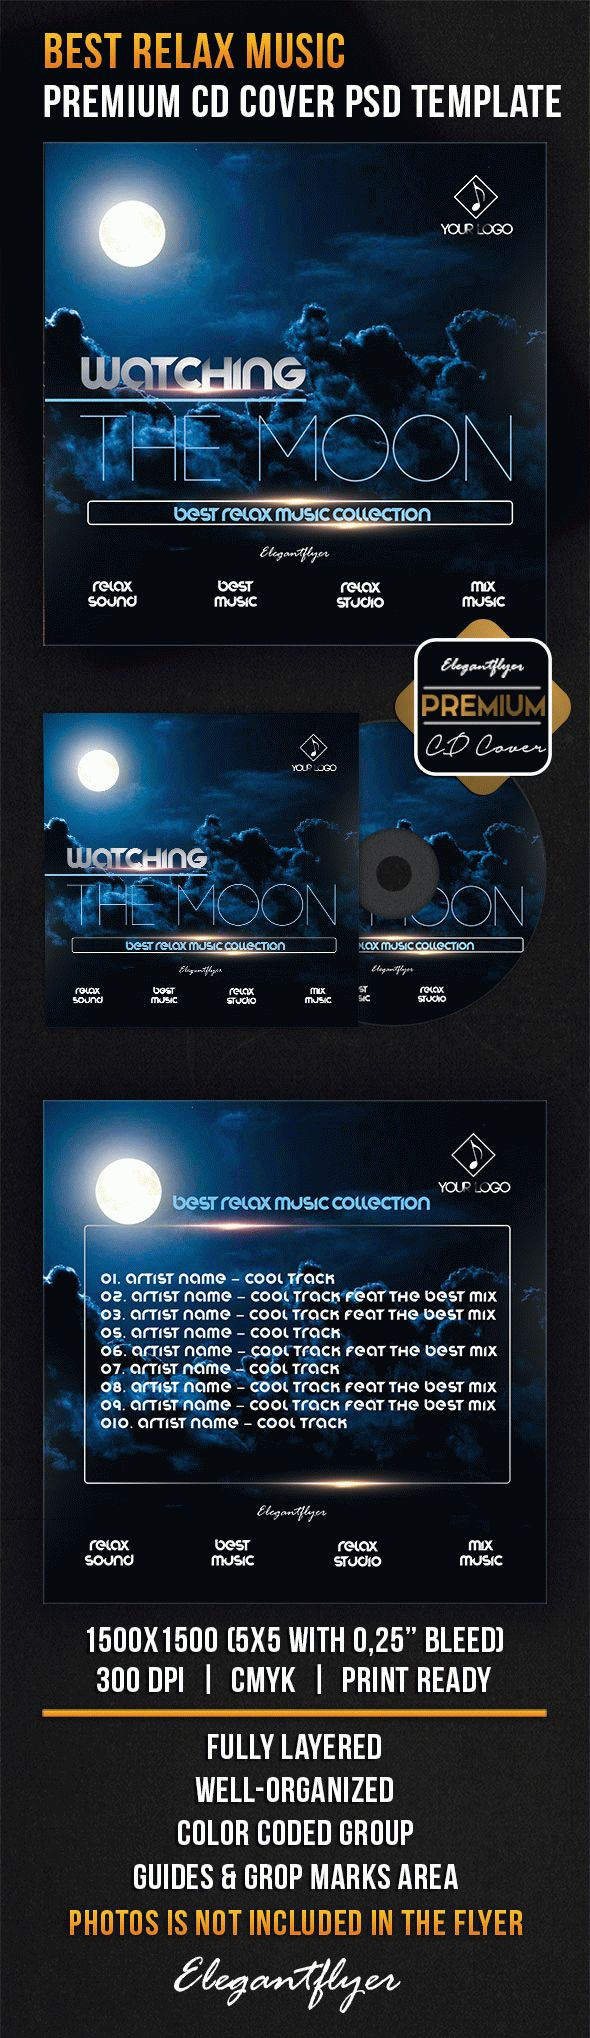 Best Relax Music – Premium CD Cover PSD Template